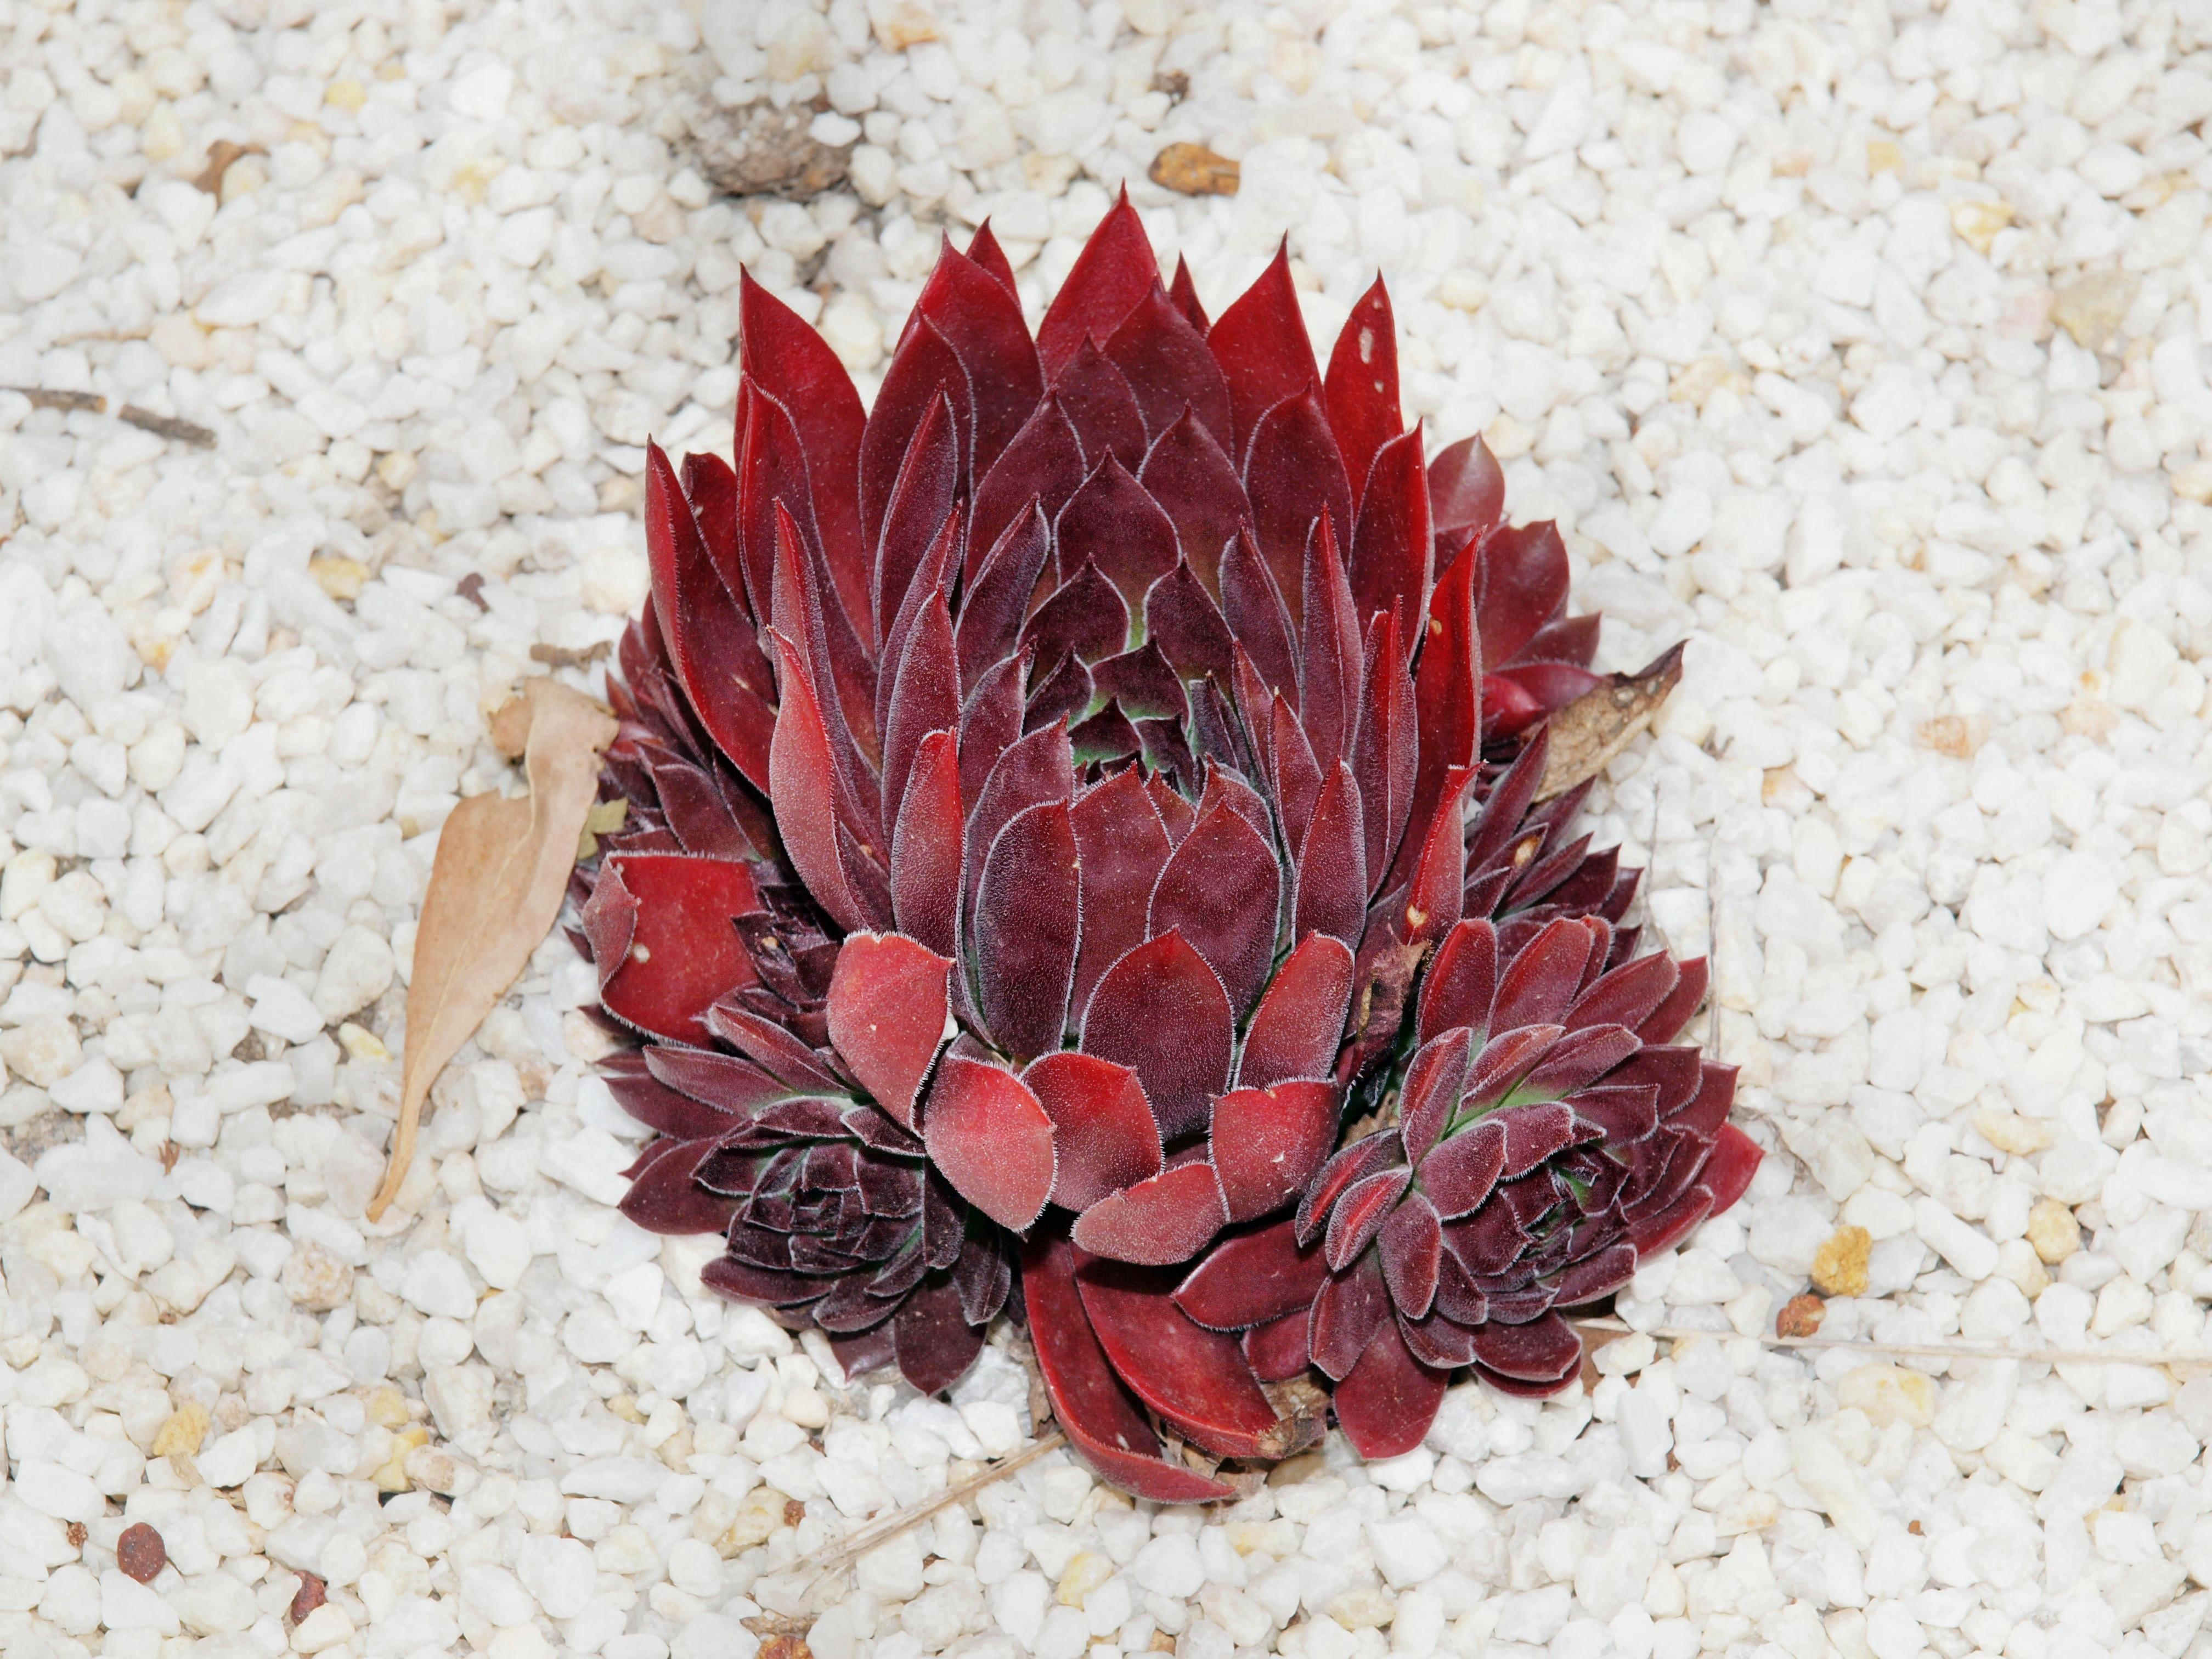 Sempervivum-3.jpeg